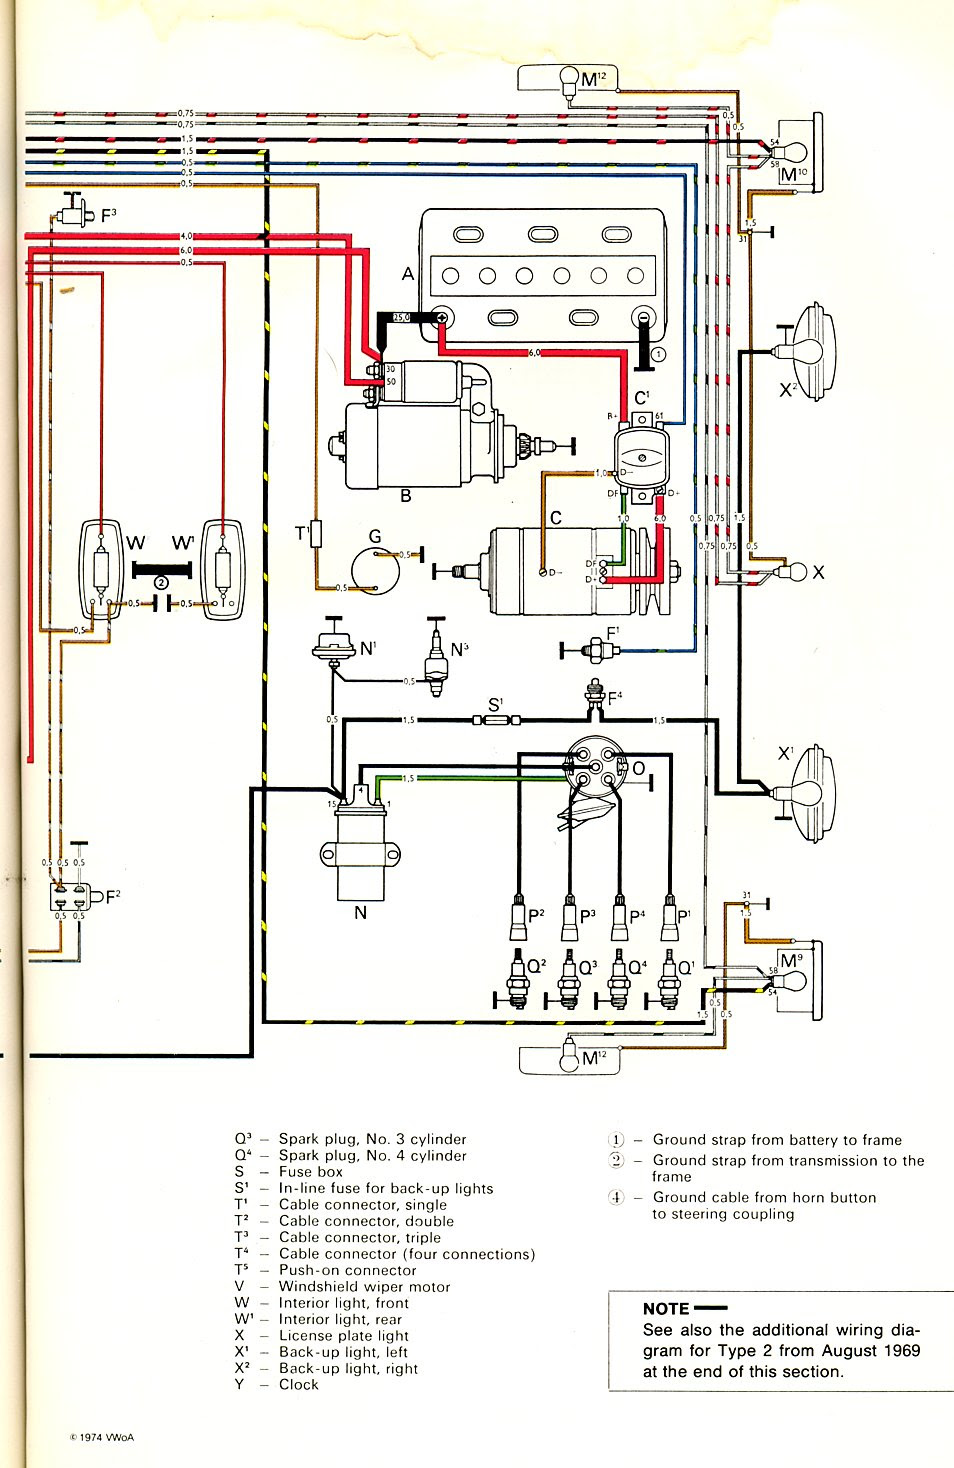 Diagram Dc Bus Wiring Diagrams Full Version Hd Quality Wiring Diagrams Pvdiagramxhouck Centromacrobioticomilanese It